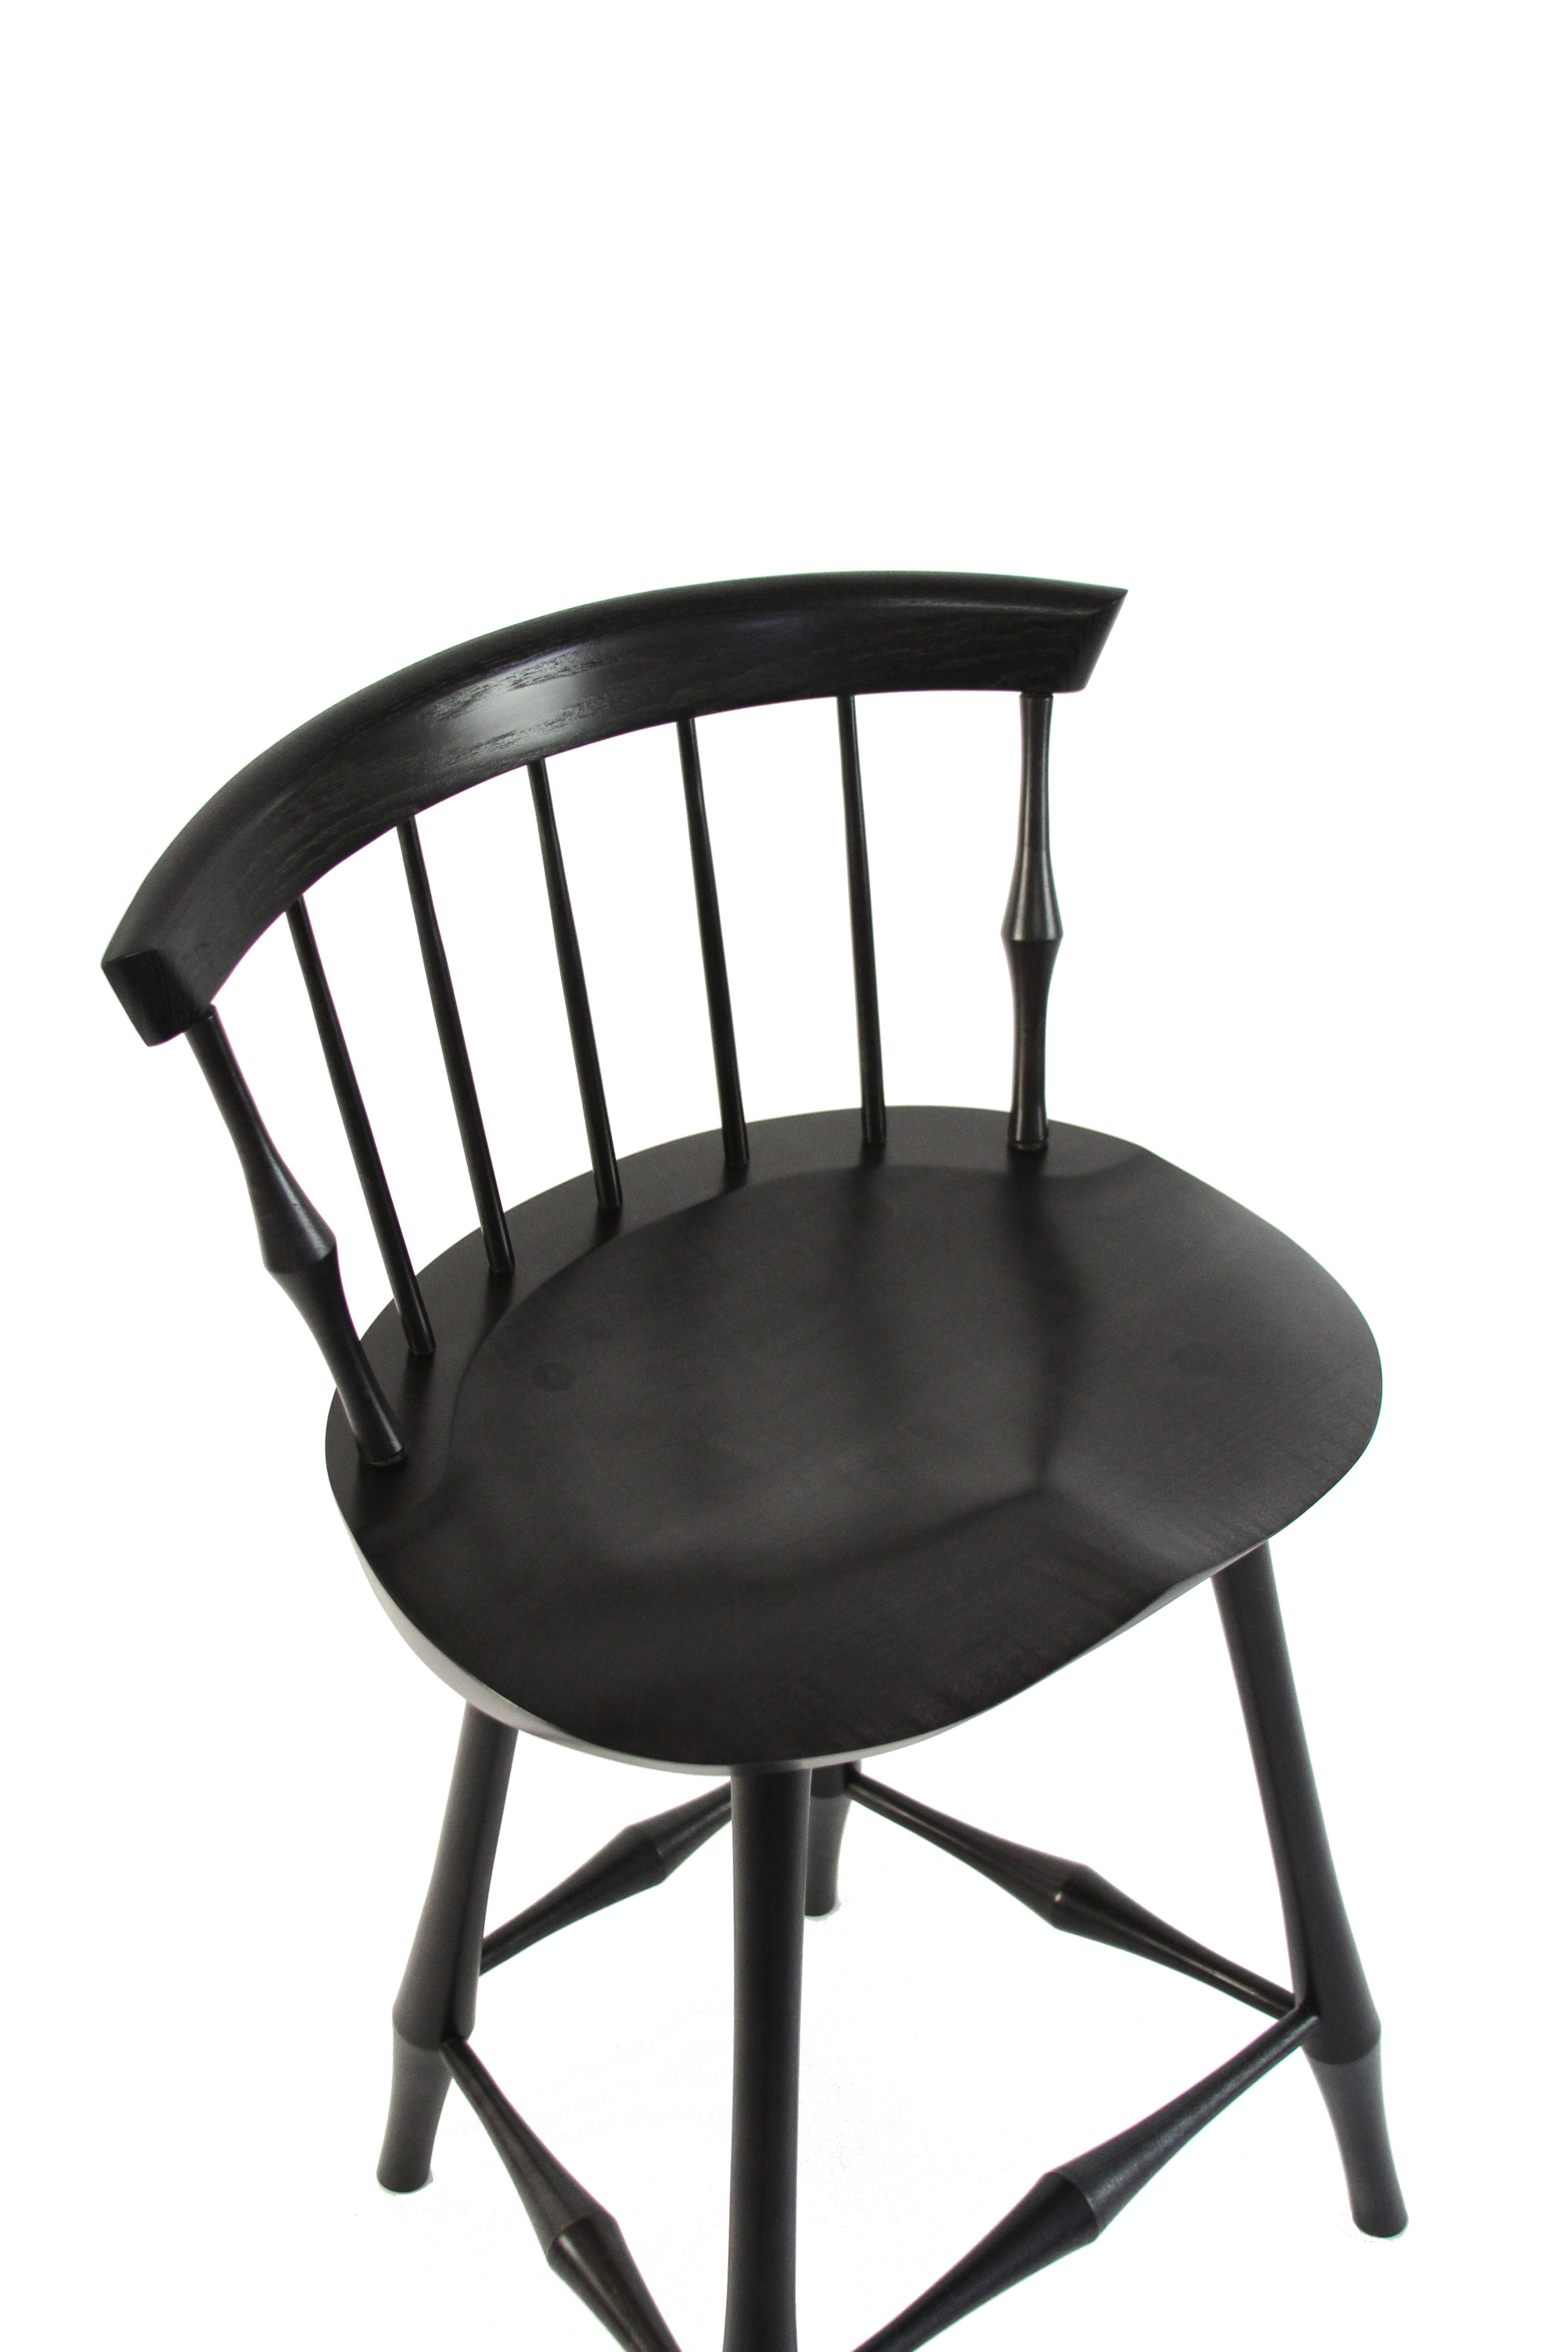 O&G Studio Wayland Fan Back Bar Counter Stool Windsor Contemporary Dining Chair Side Chair Ebonized Black Stain on Maple